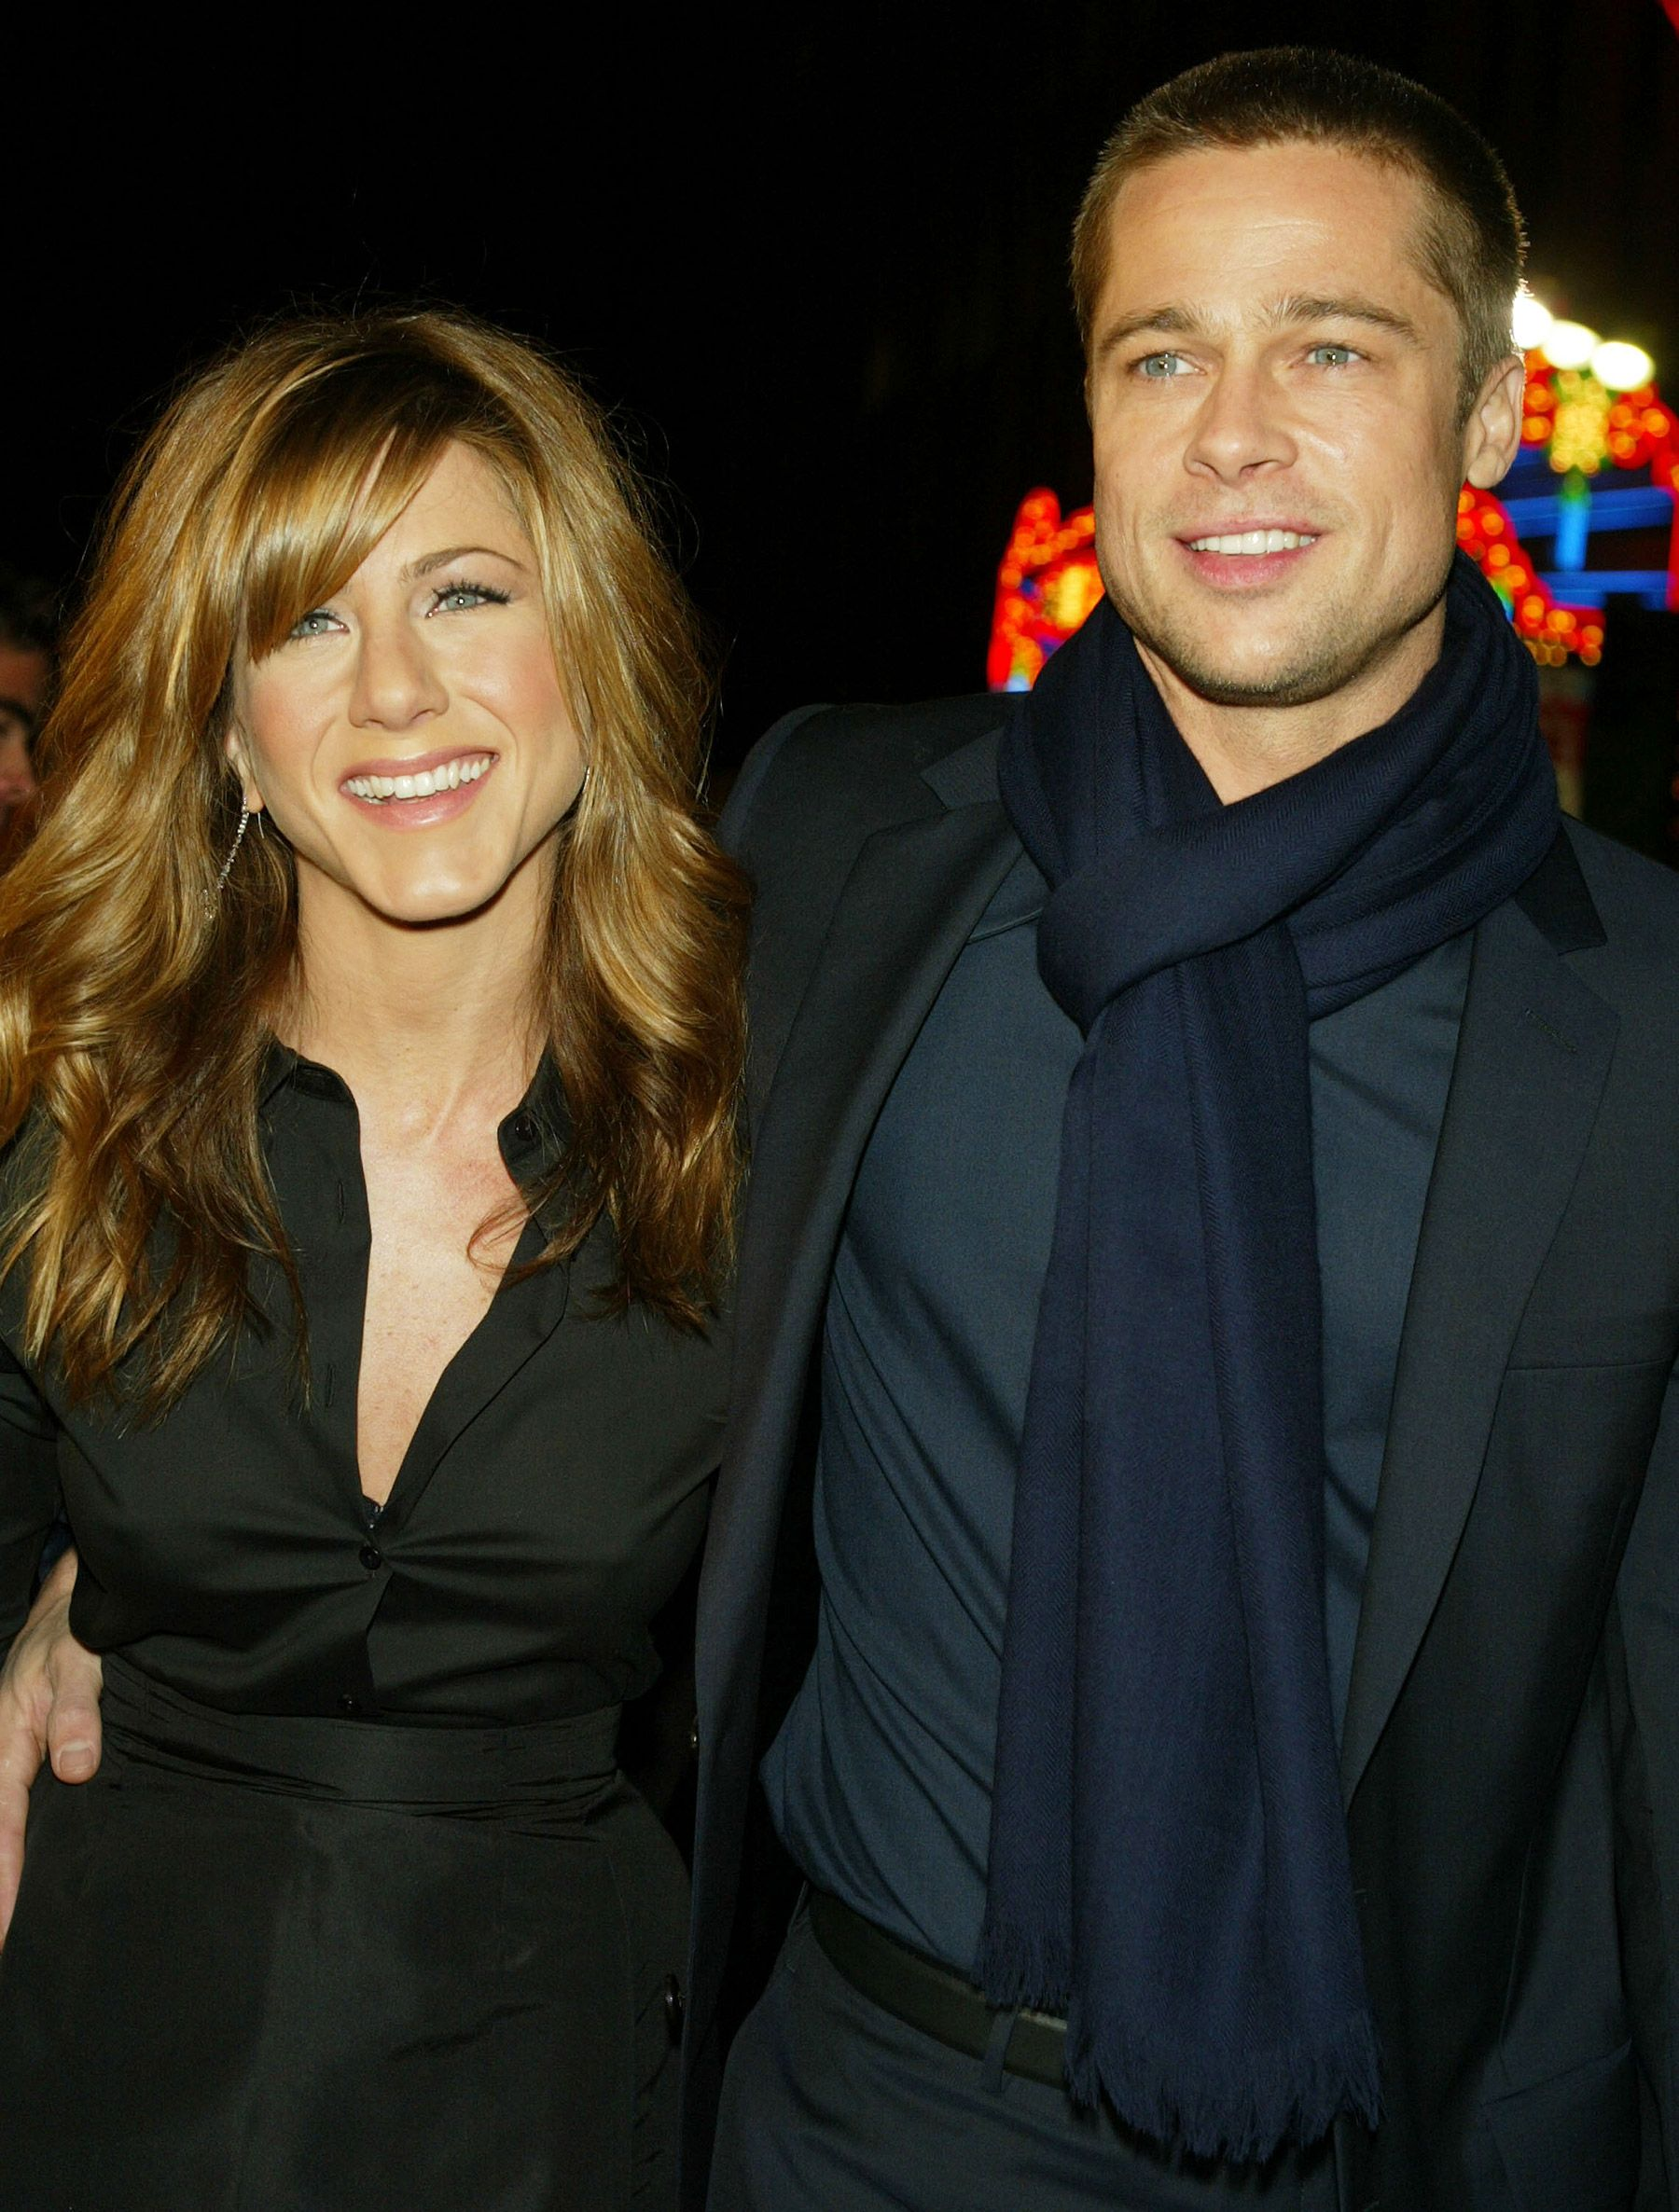 Brad Pitt and Jennifer Aniston